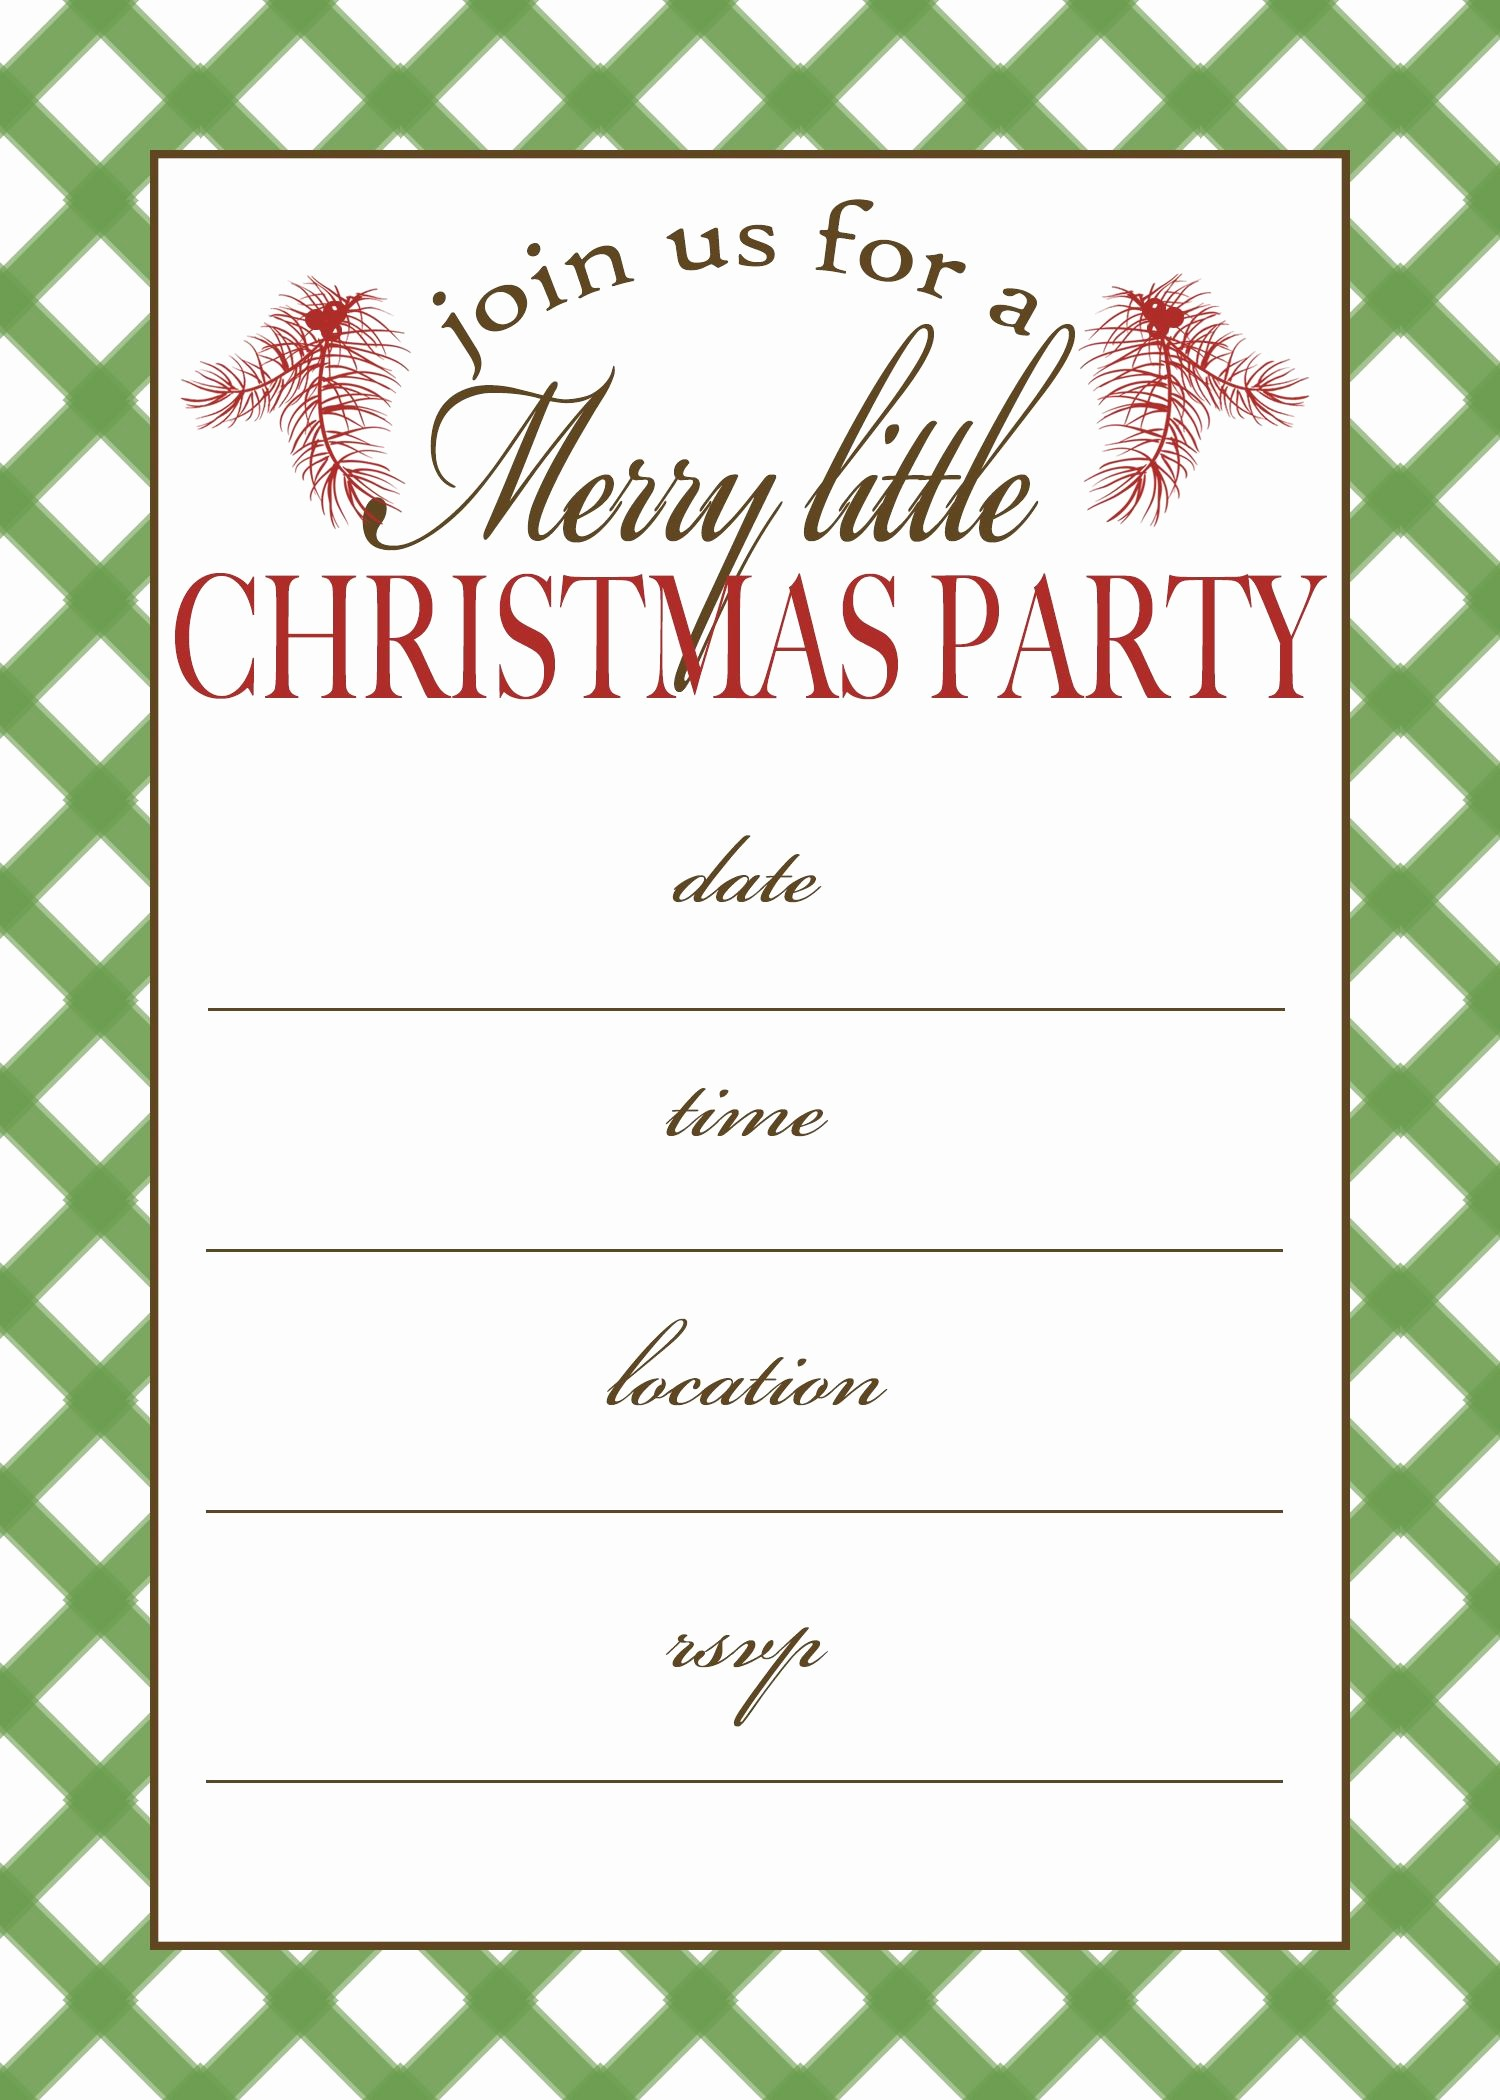 Free Online Christmas Party Invitations Inspirational Free Printable Christmas Party Invitation